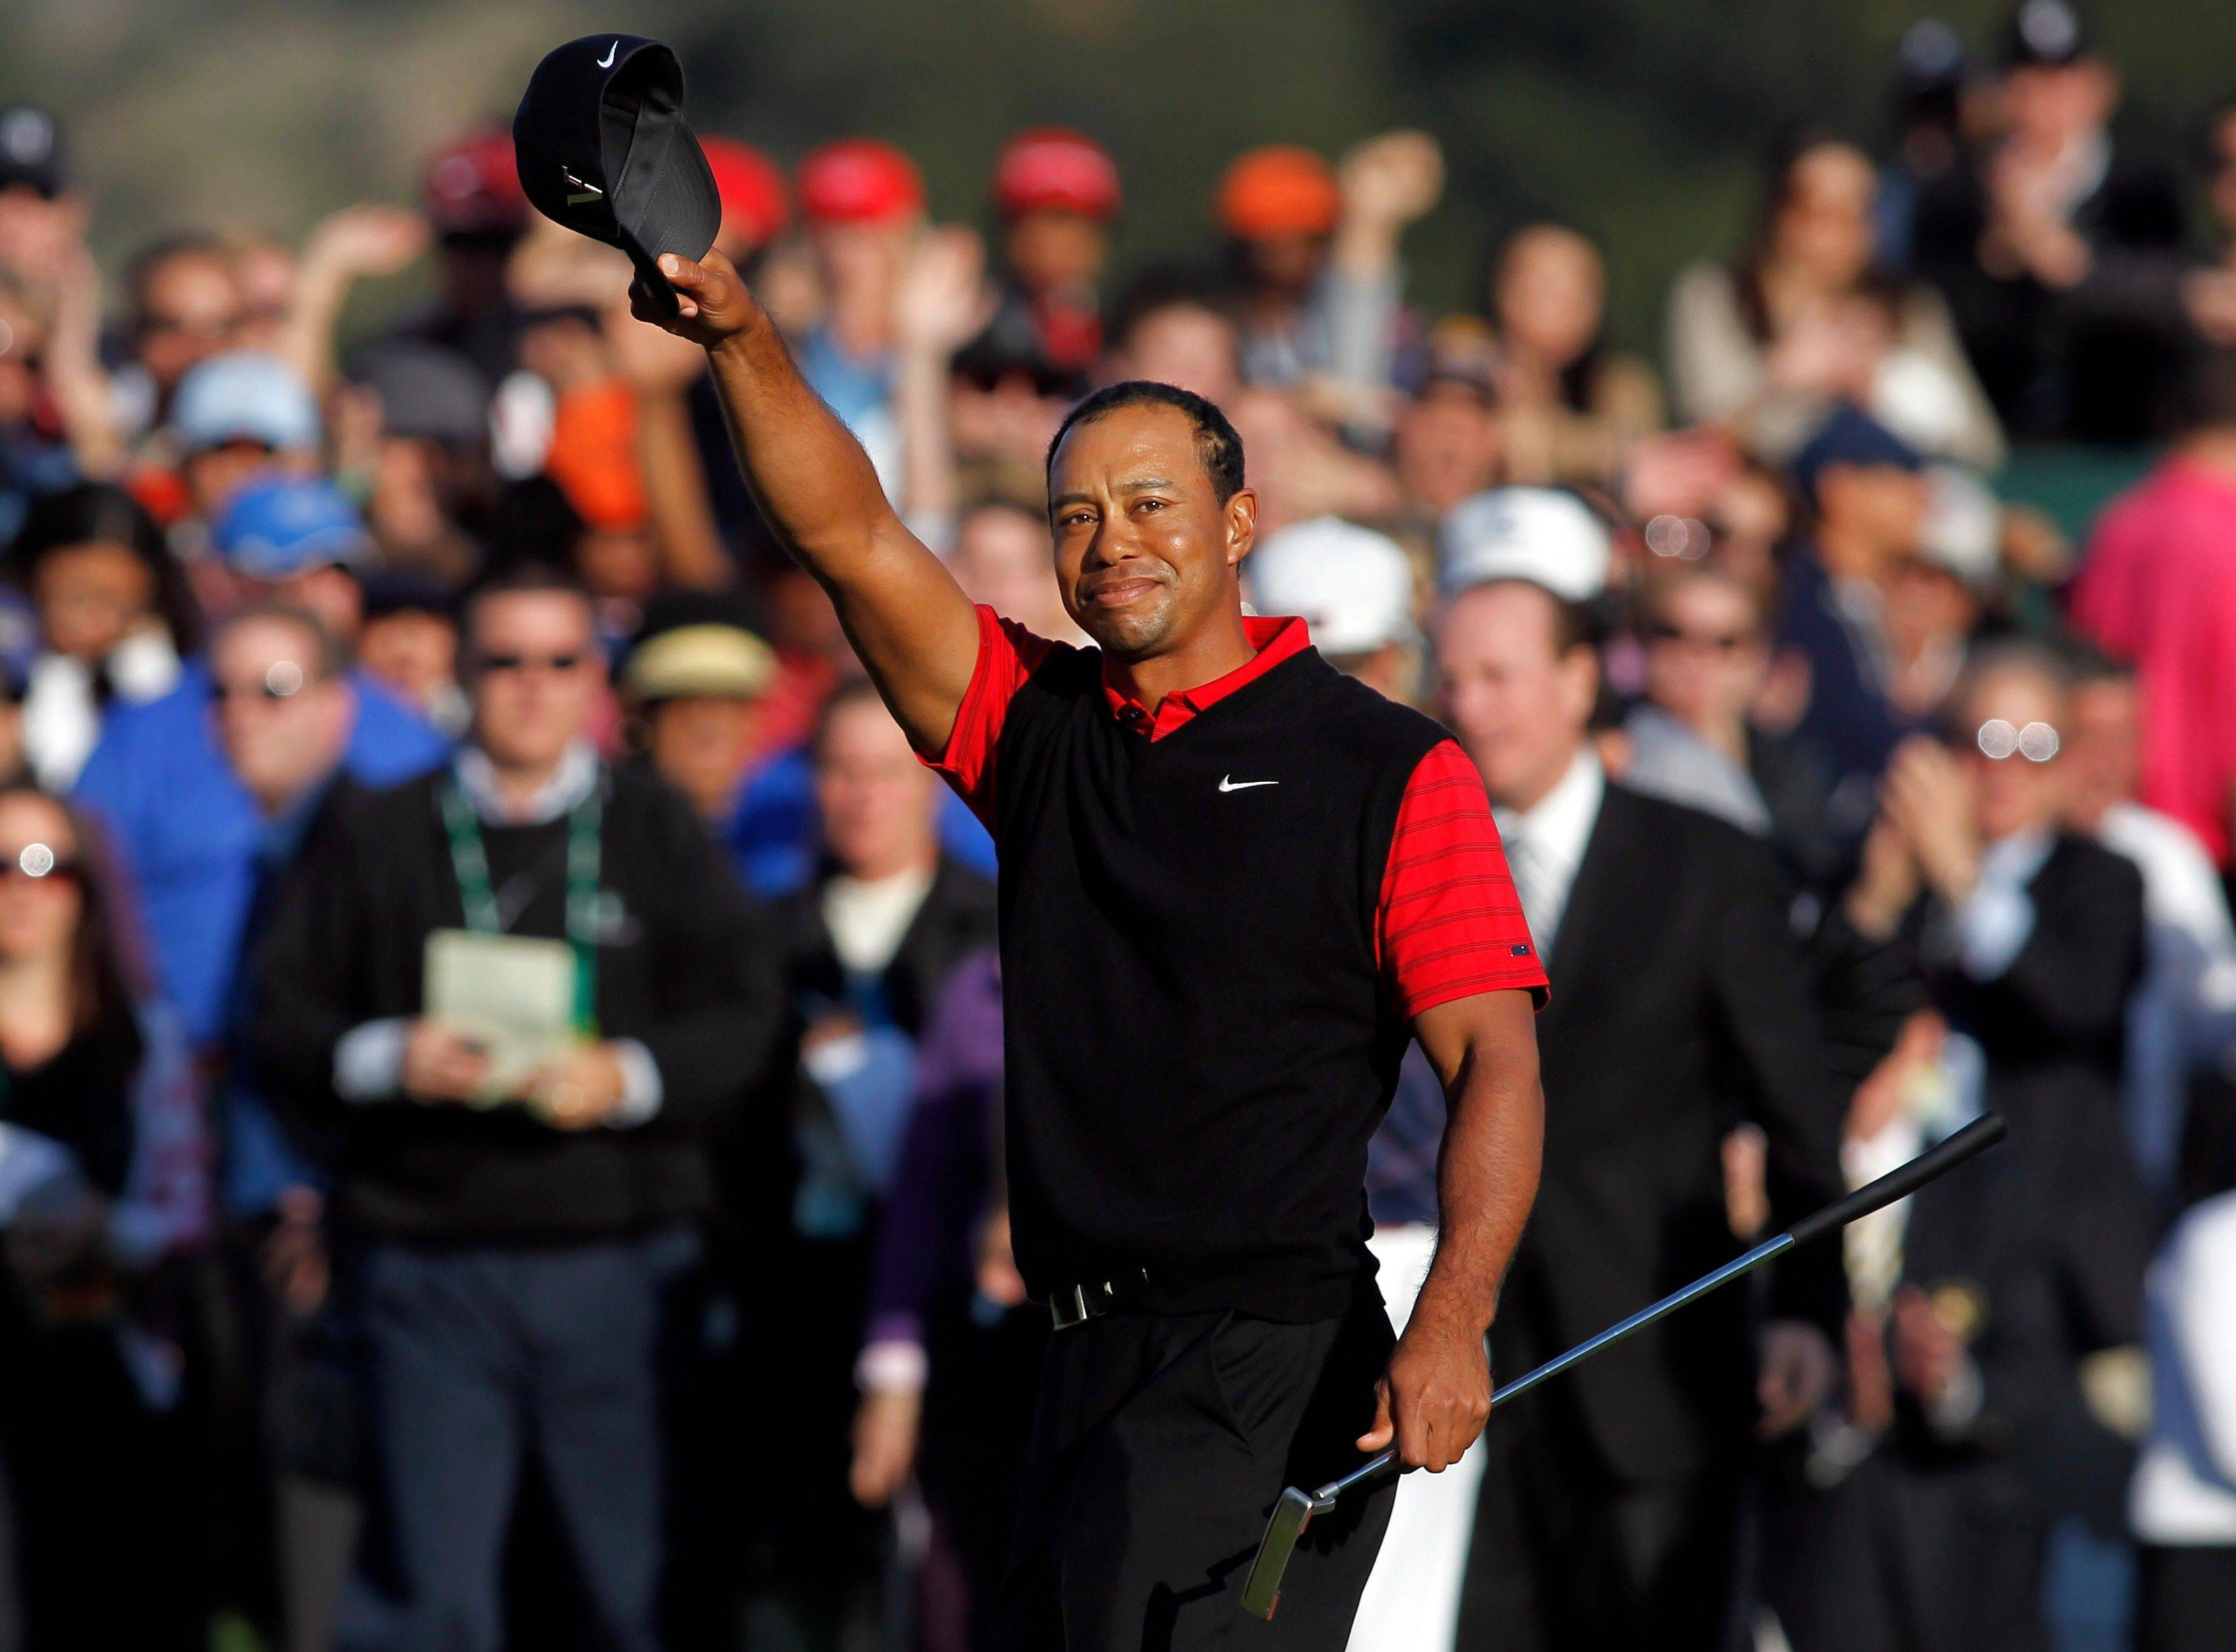 Tiger Woods waves his cap Sunday after winning the Chevron World Challenge golf tournament at Sherwood Country Club in Thousand Oaks, Calif.